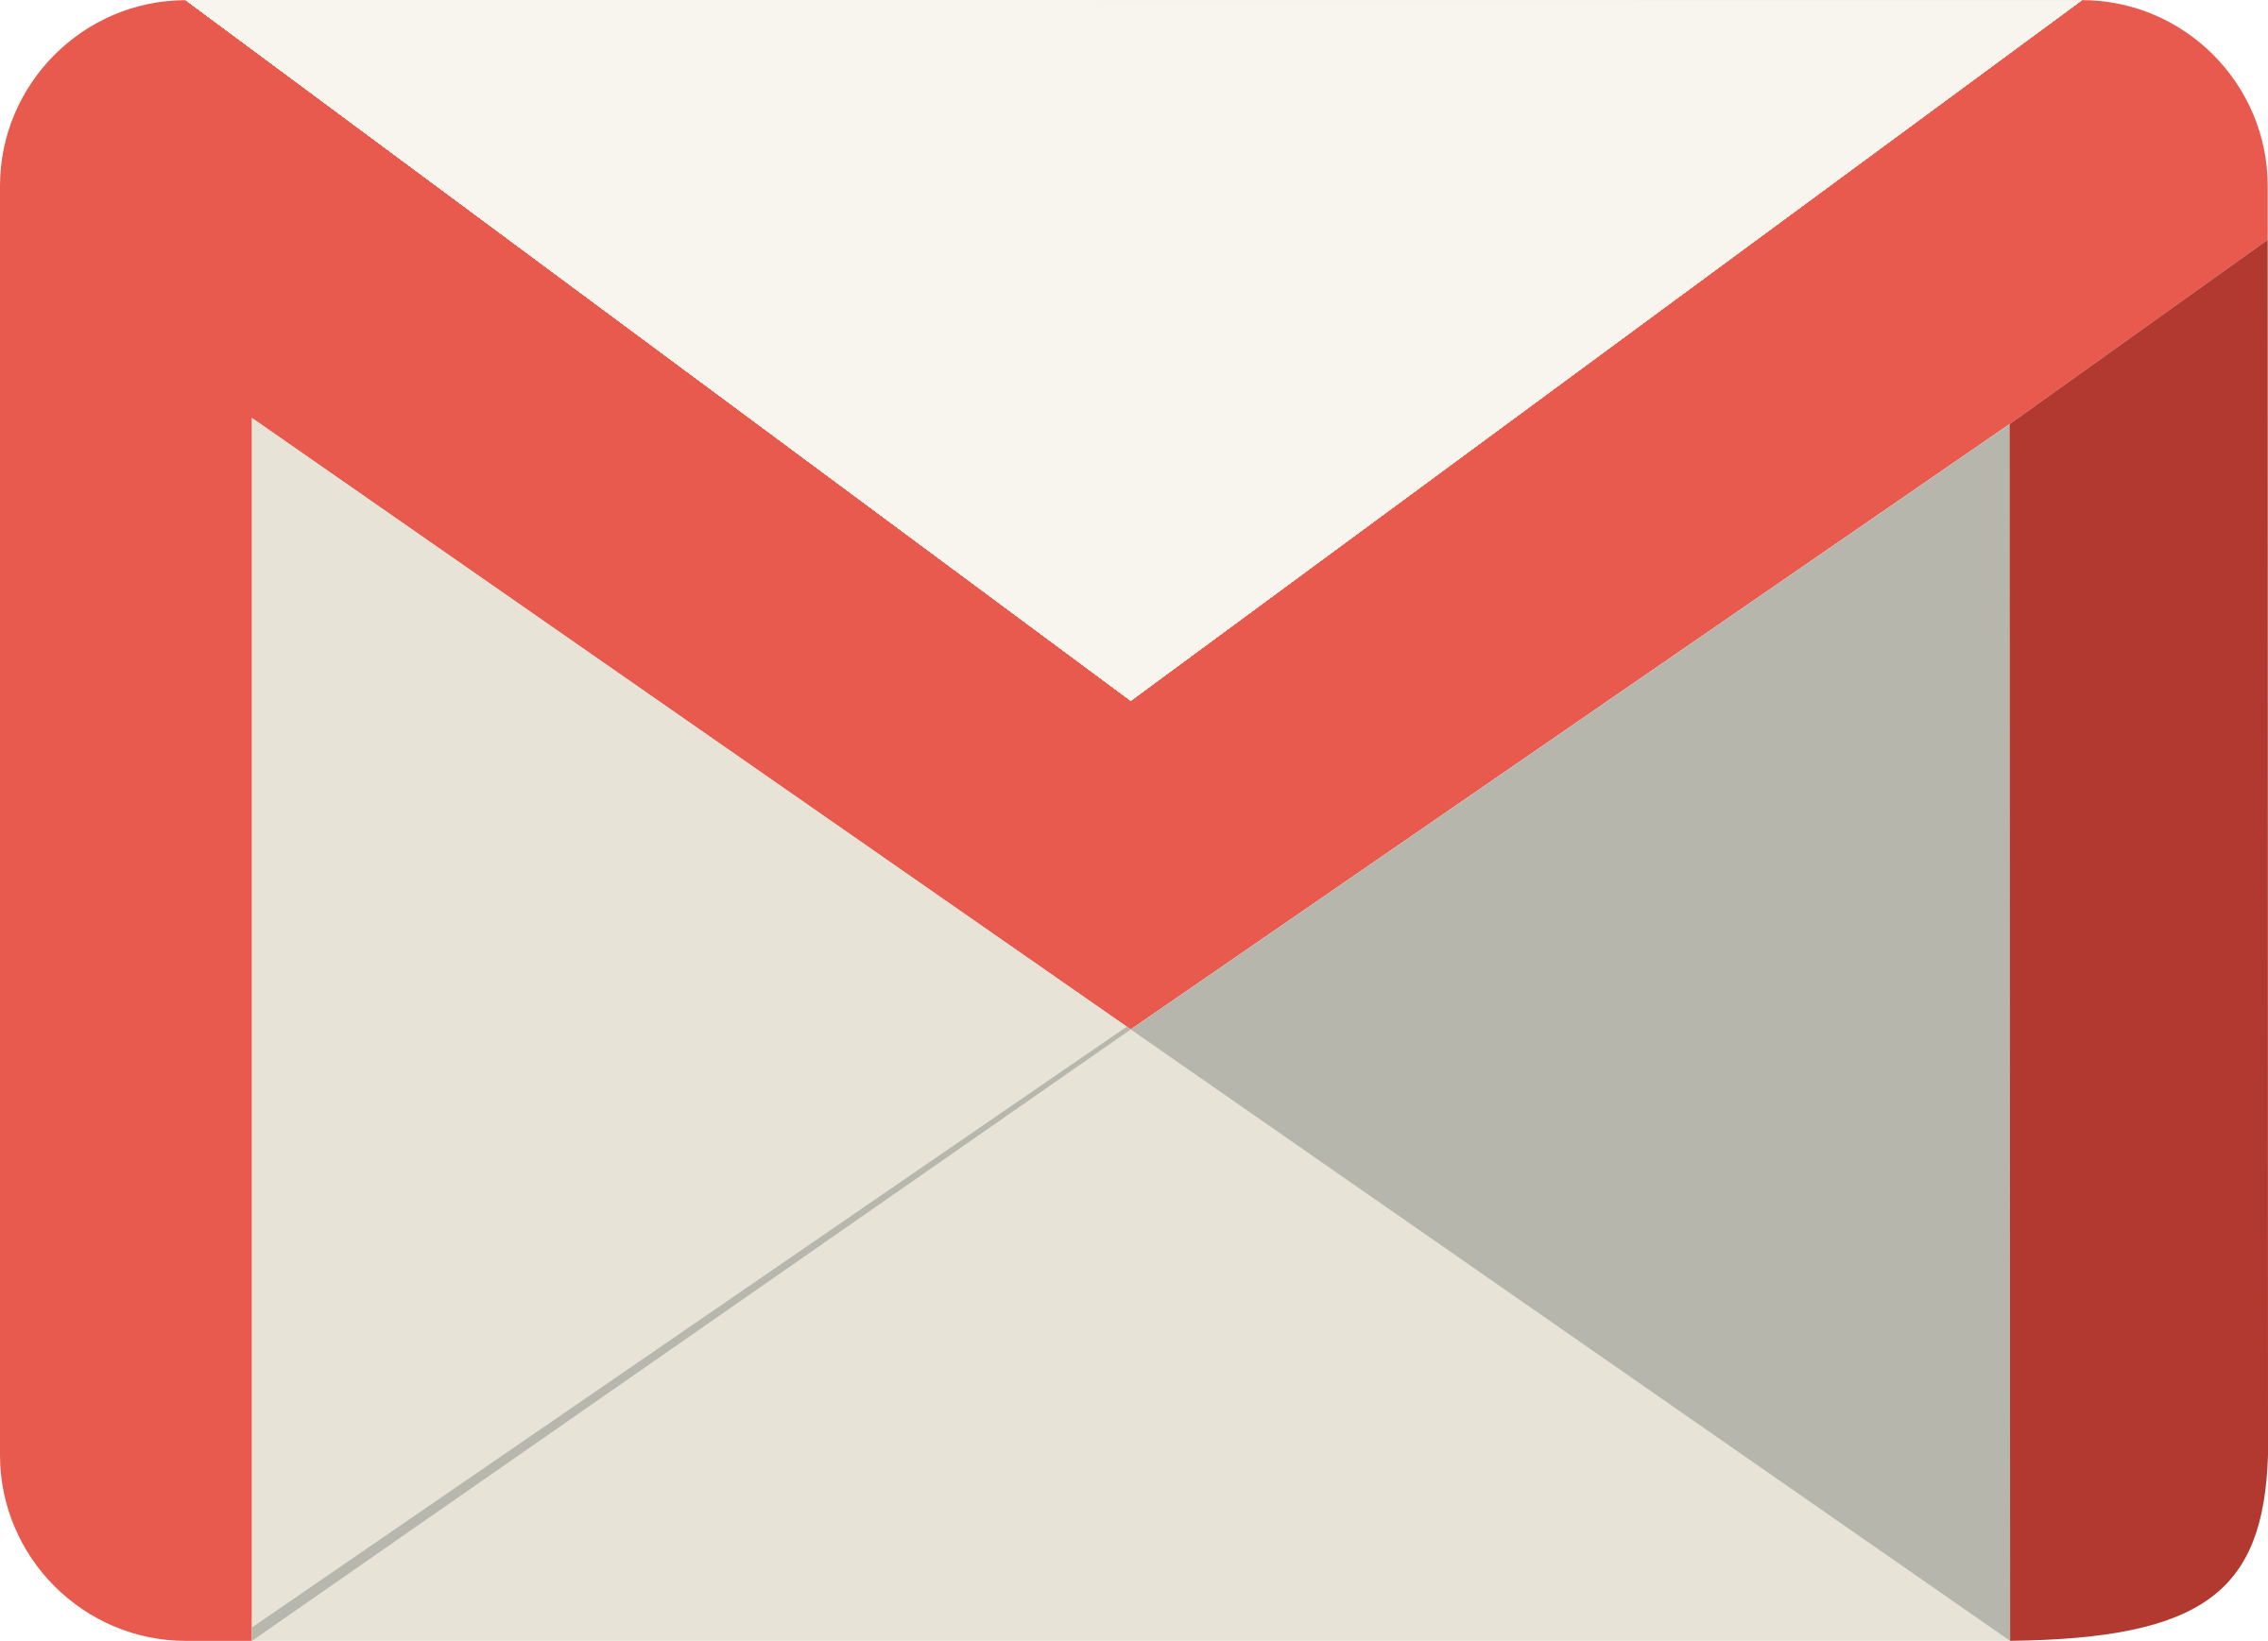 2400x1737 Gmail Icon Logo Png Transparent Amp Svg Vector